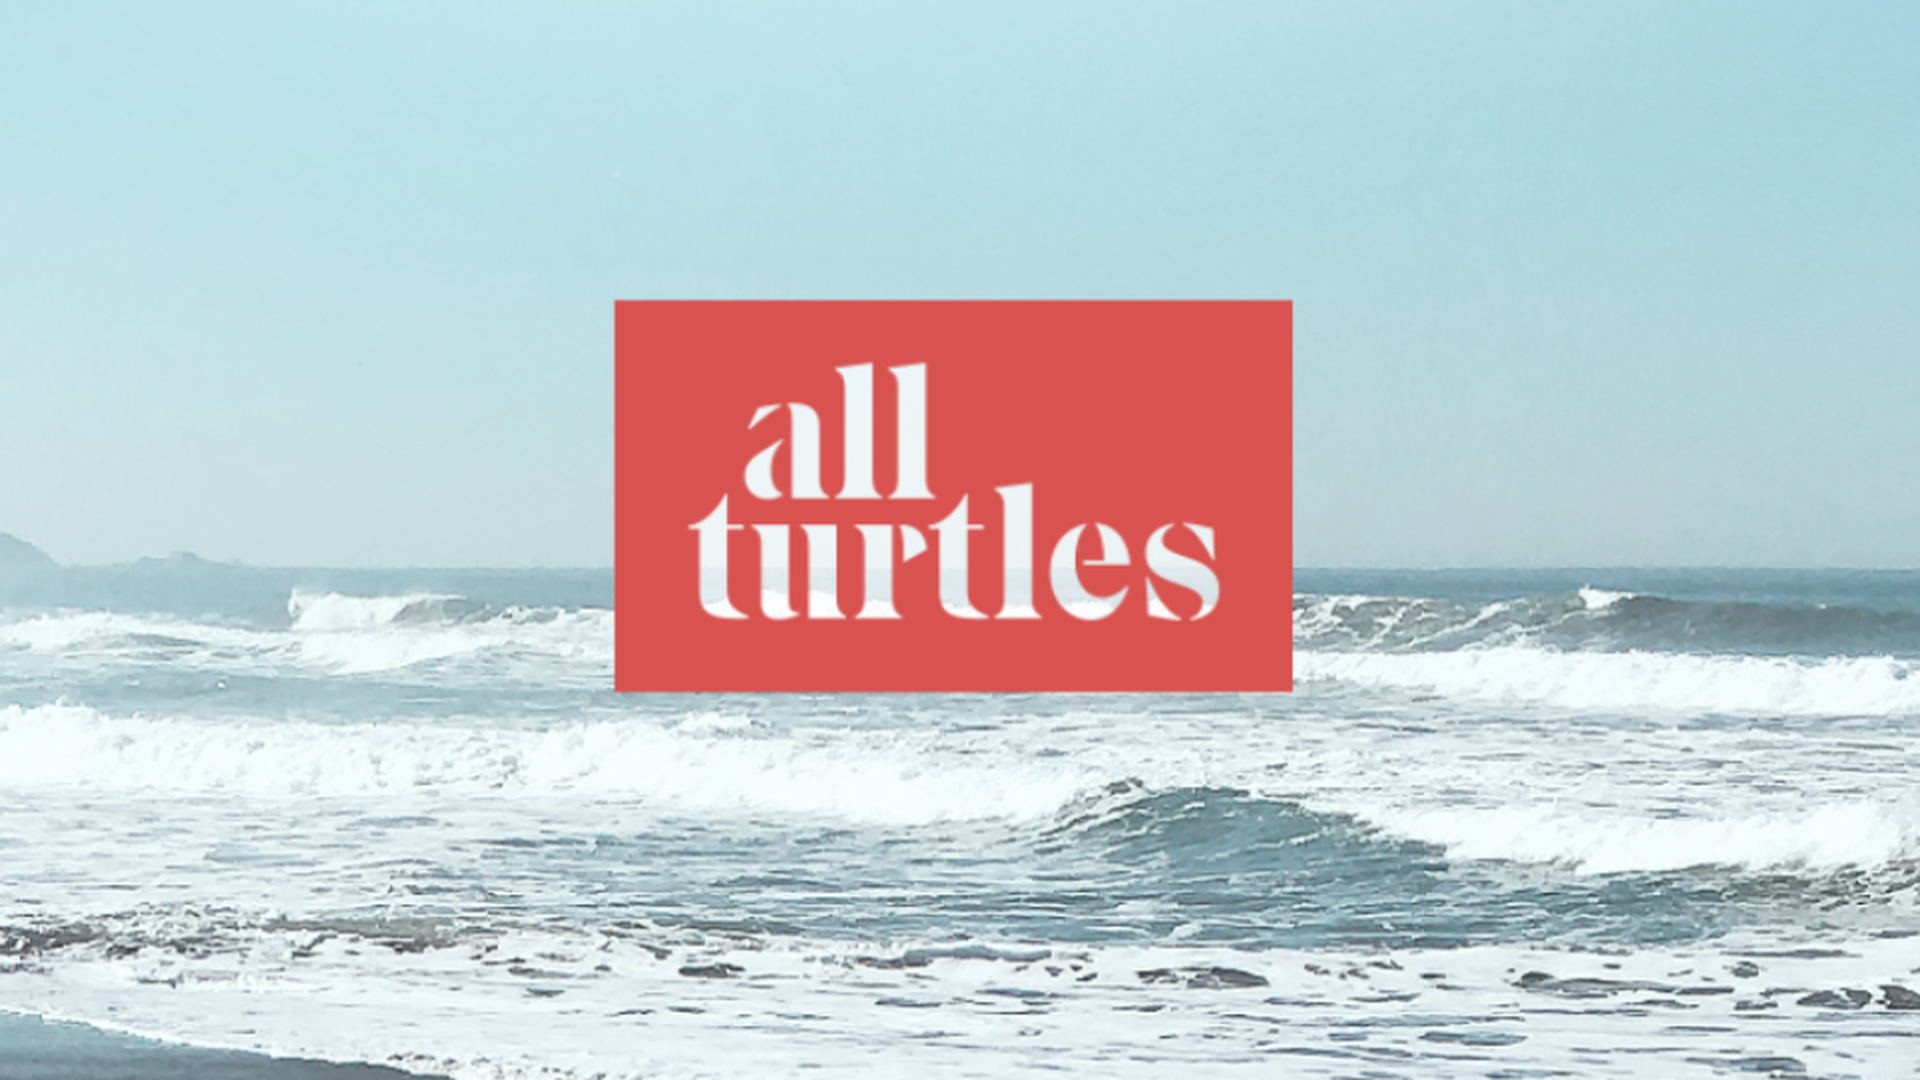 Former Evernote CEO launches All Turtles, a modern twist on the product design studio